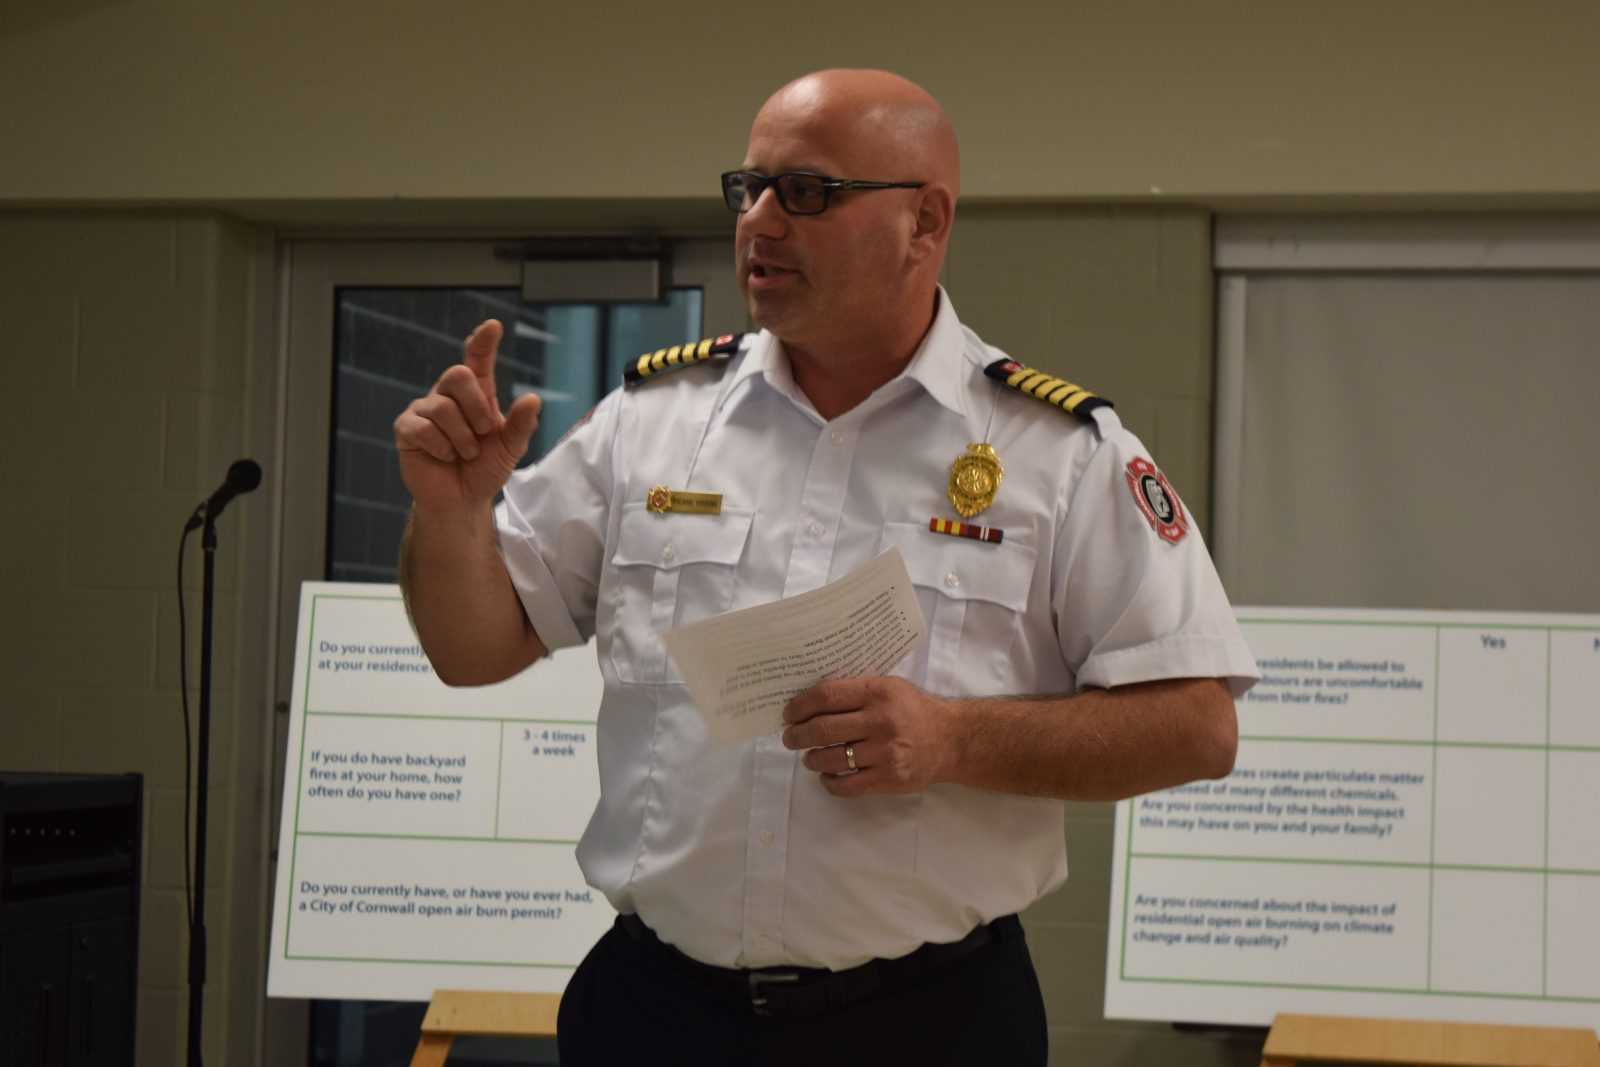 Burning questions posed of Fire Chief at open house